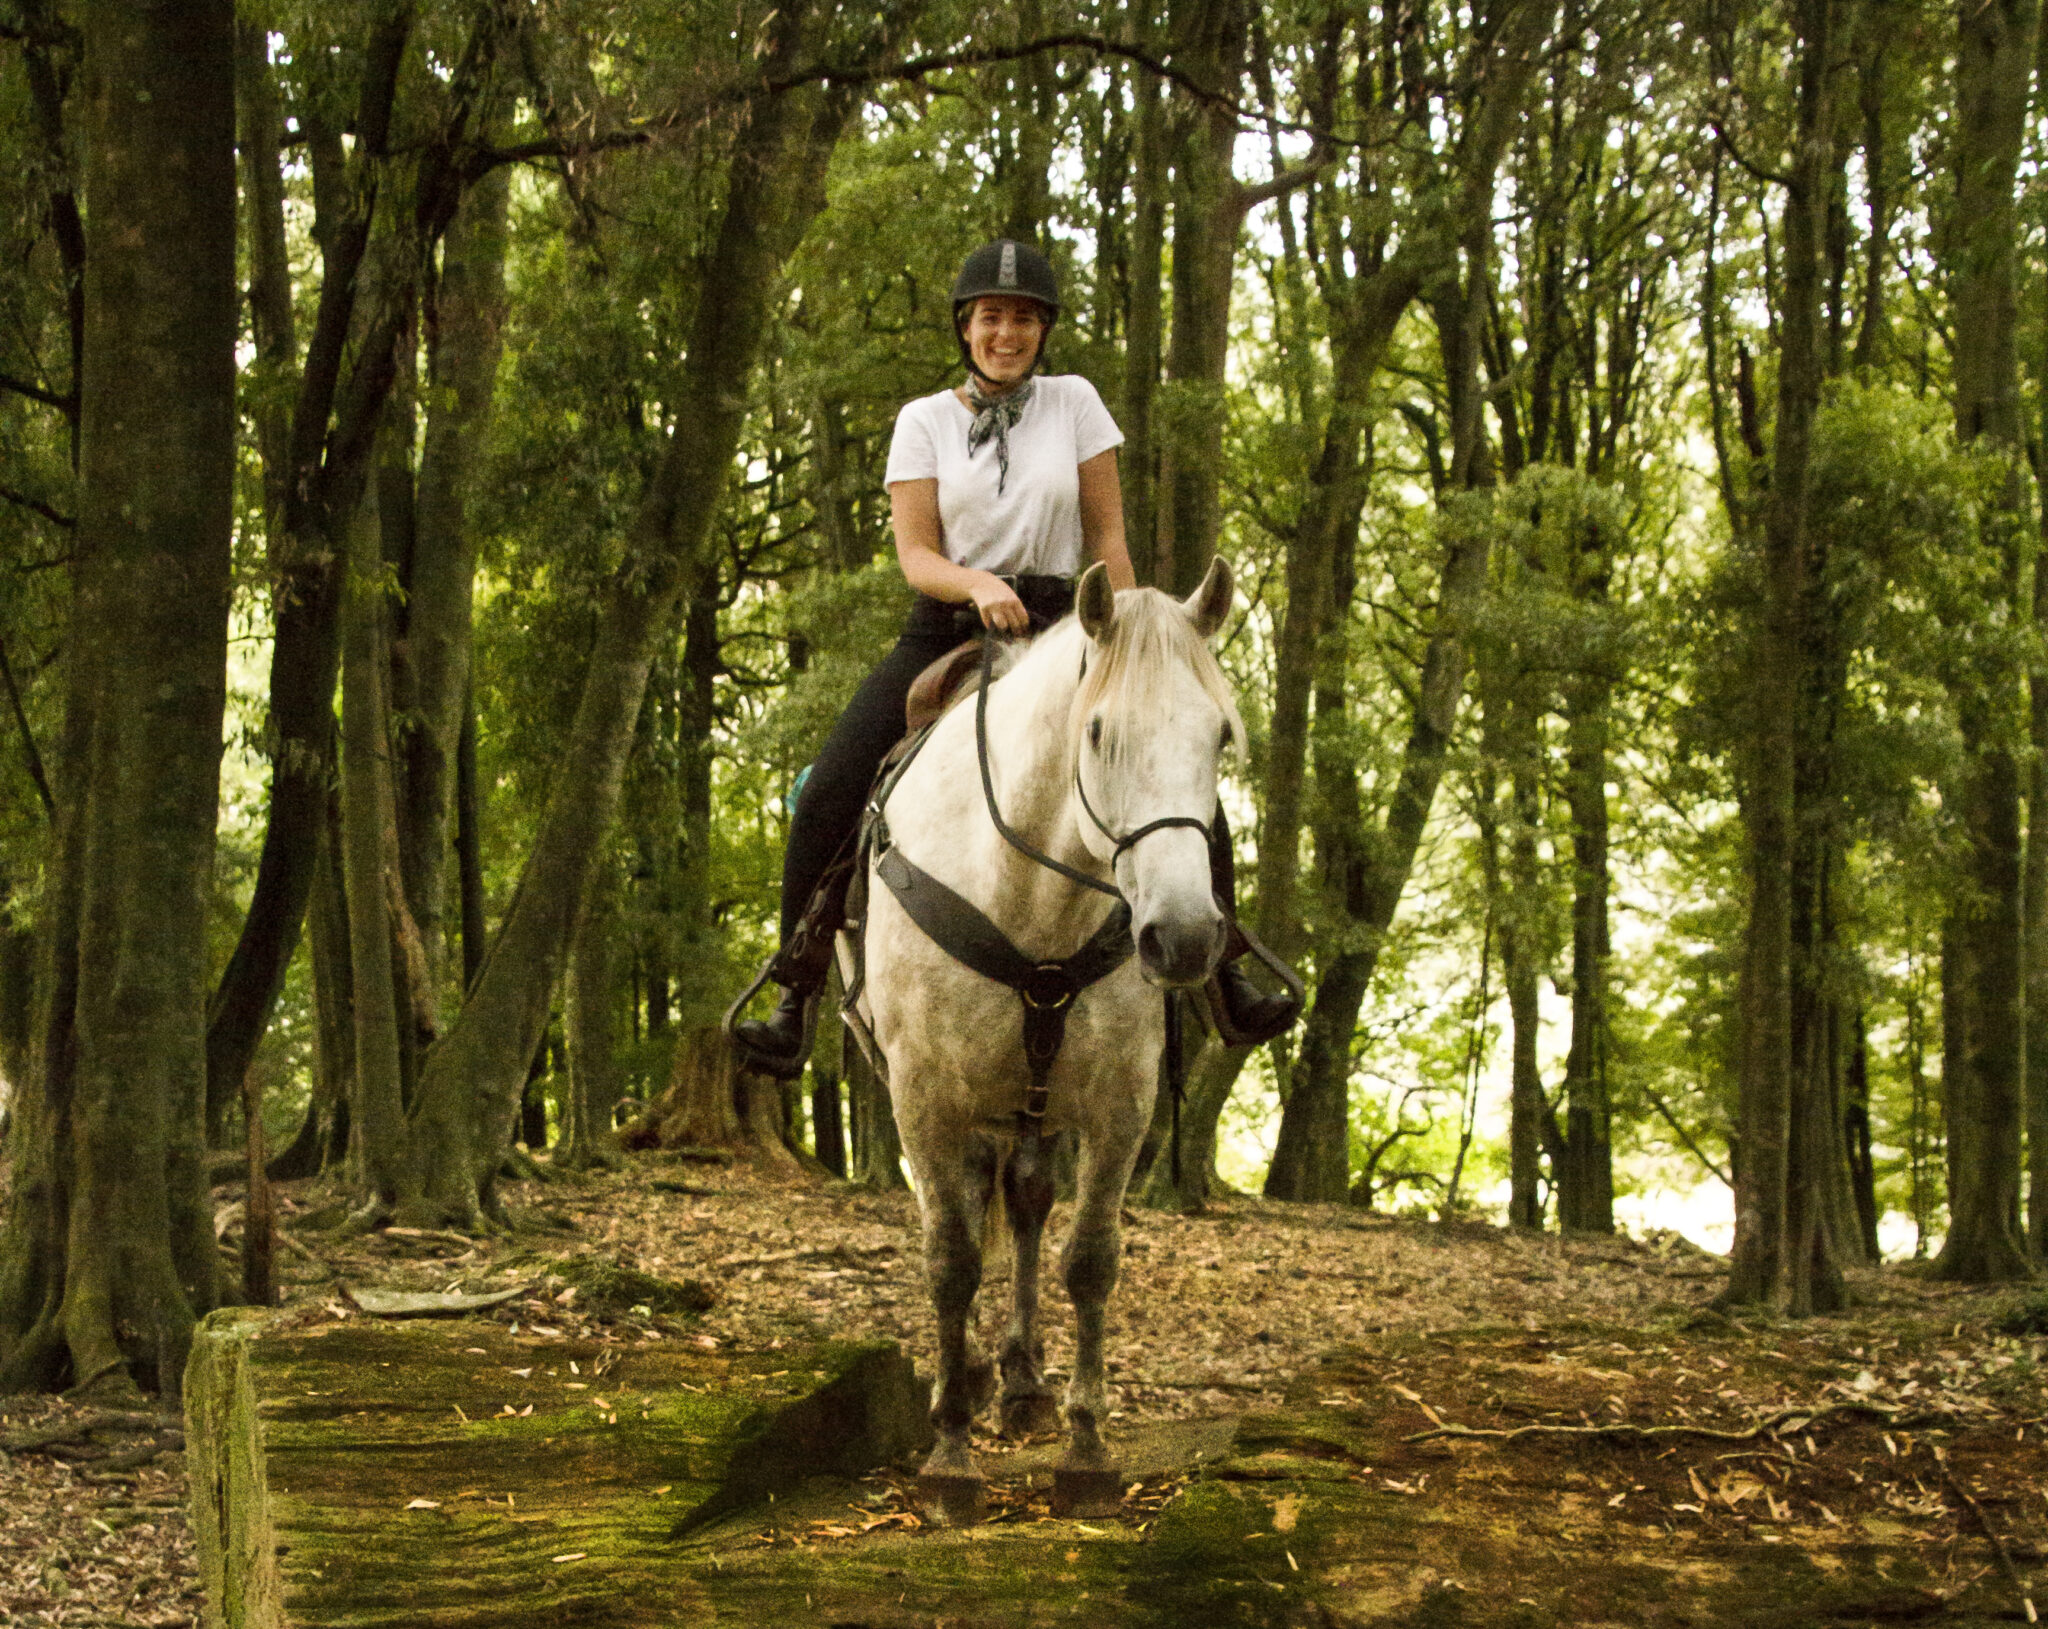 Globetrotting Guest Horse: Te One - The River Valley Ride, North Island, New Zealand - Globetrotting horse riding holidays